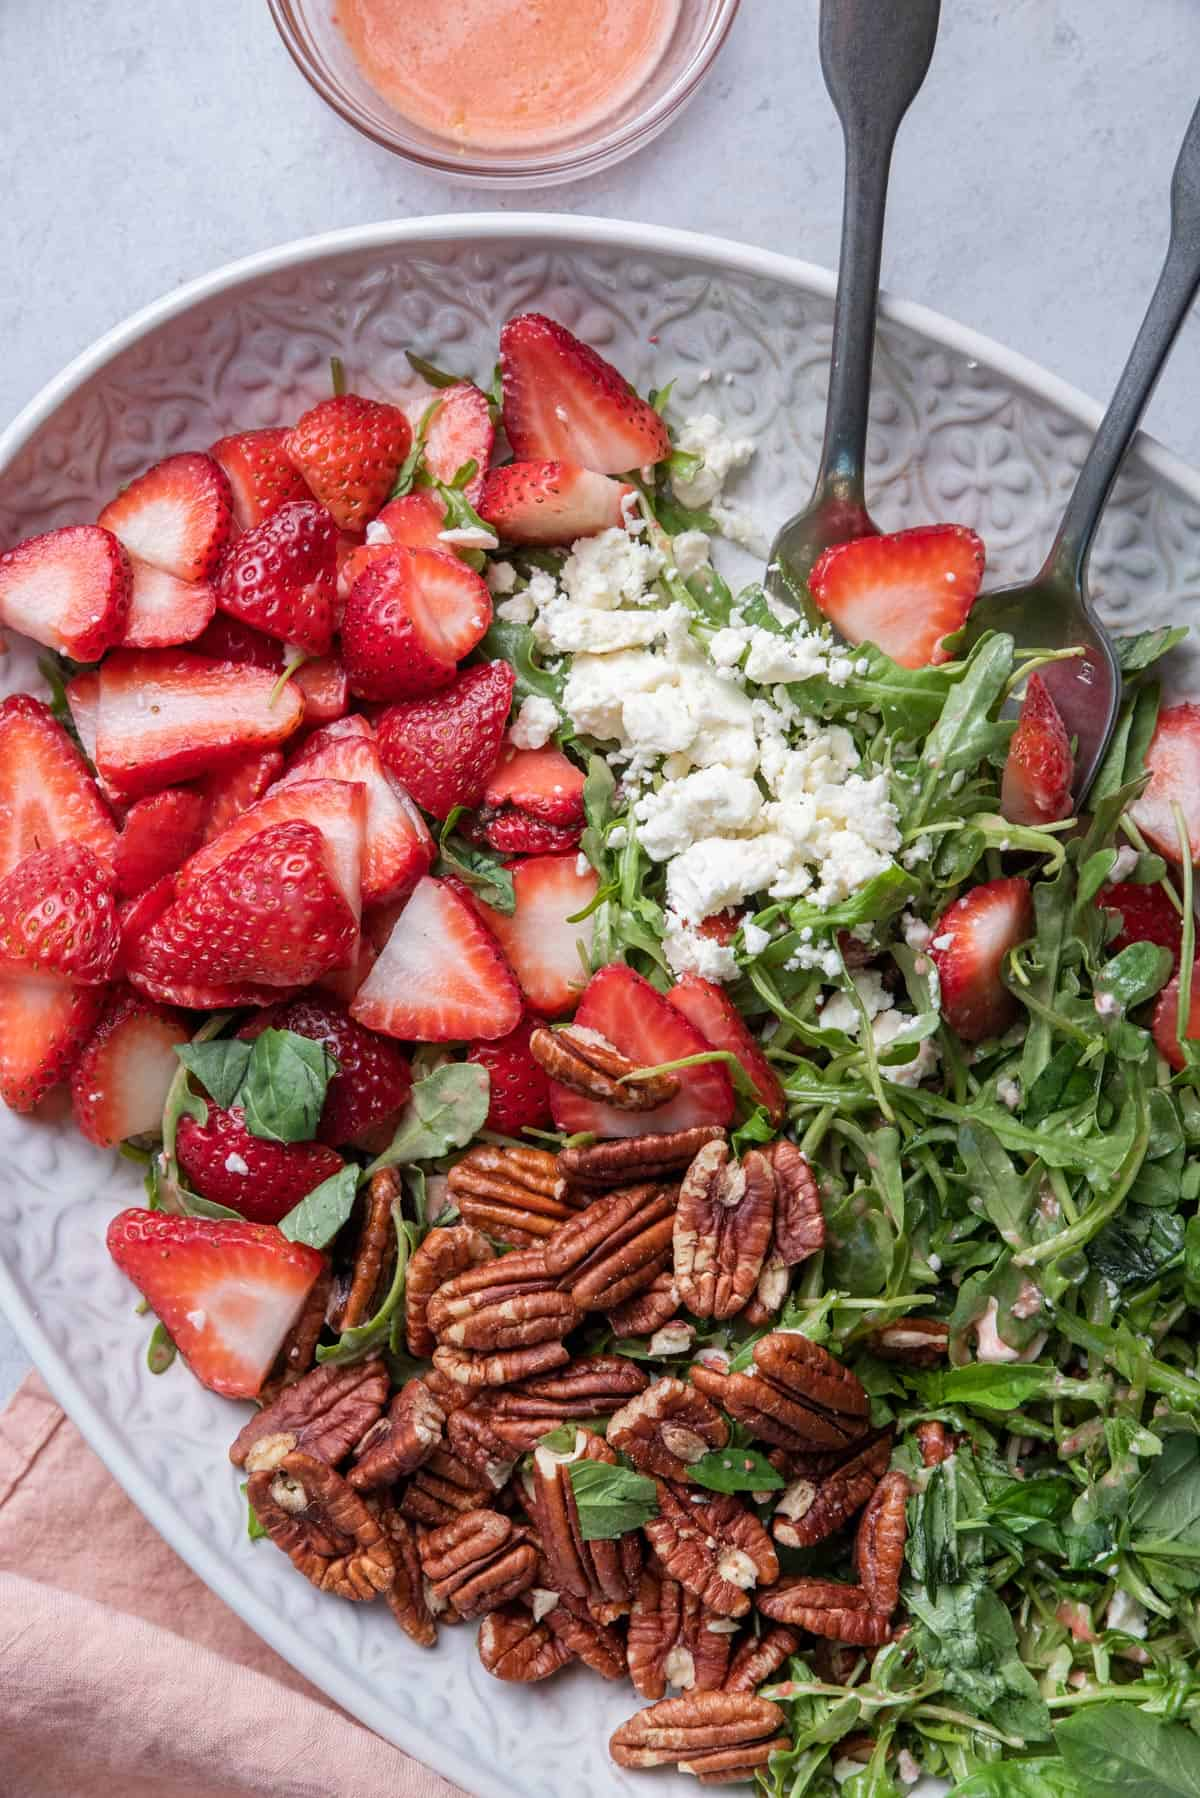 Close up shot of the strawberry arugula salad with fork and spoon for serving